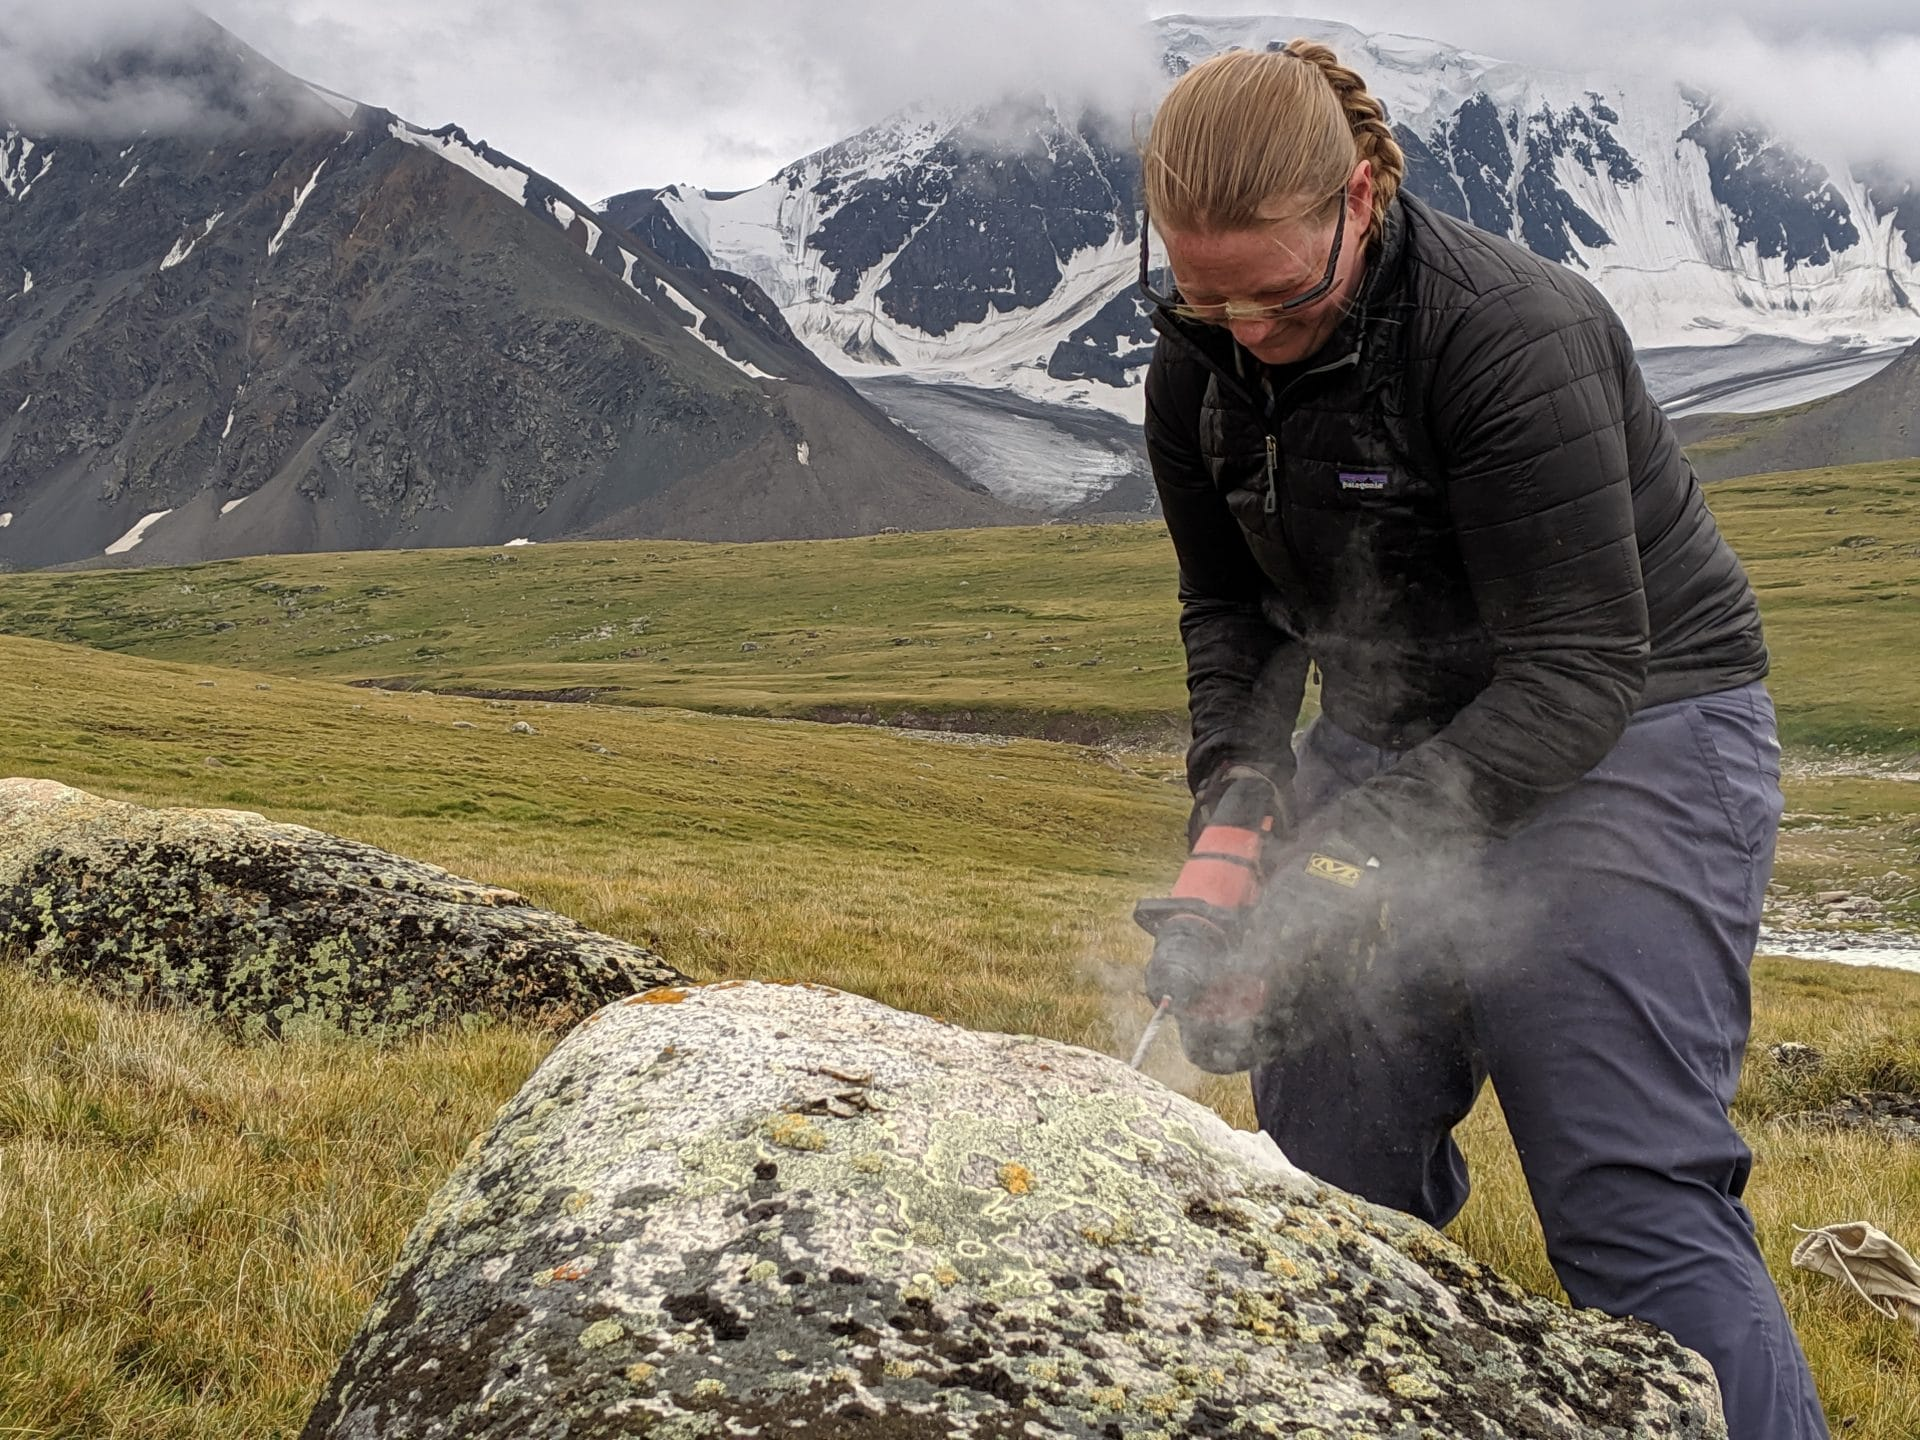 Jess Stevens drills into a deposited boulder. The rock chipping she gathers could hold the clue as to how fast the climate is warming.